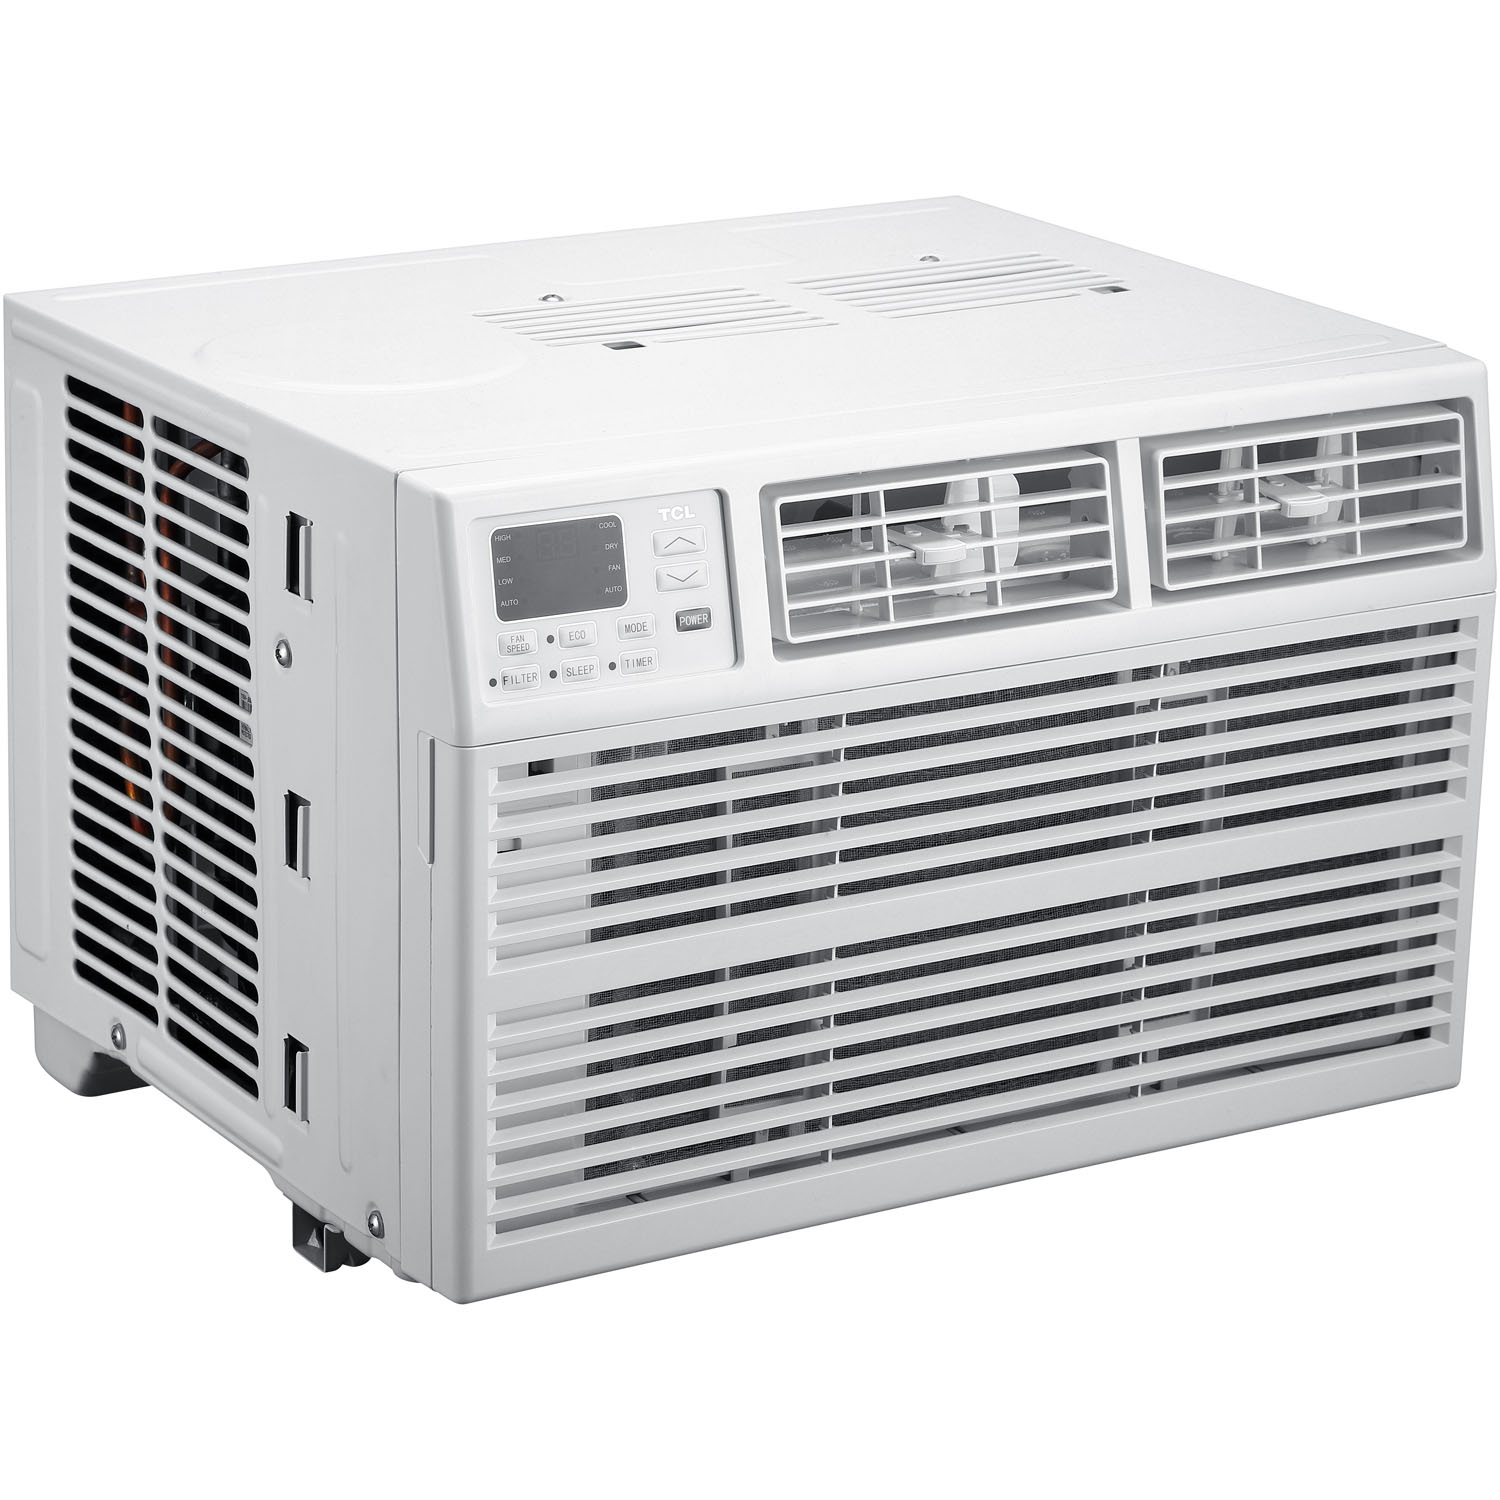 Tcl energy star 12 000 btu 115v window mounted air for 12000 btu window air conditioner energy star